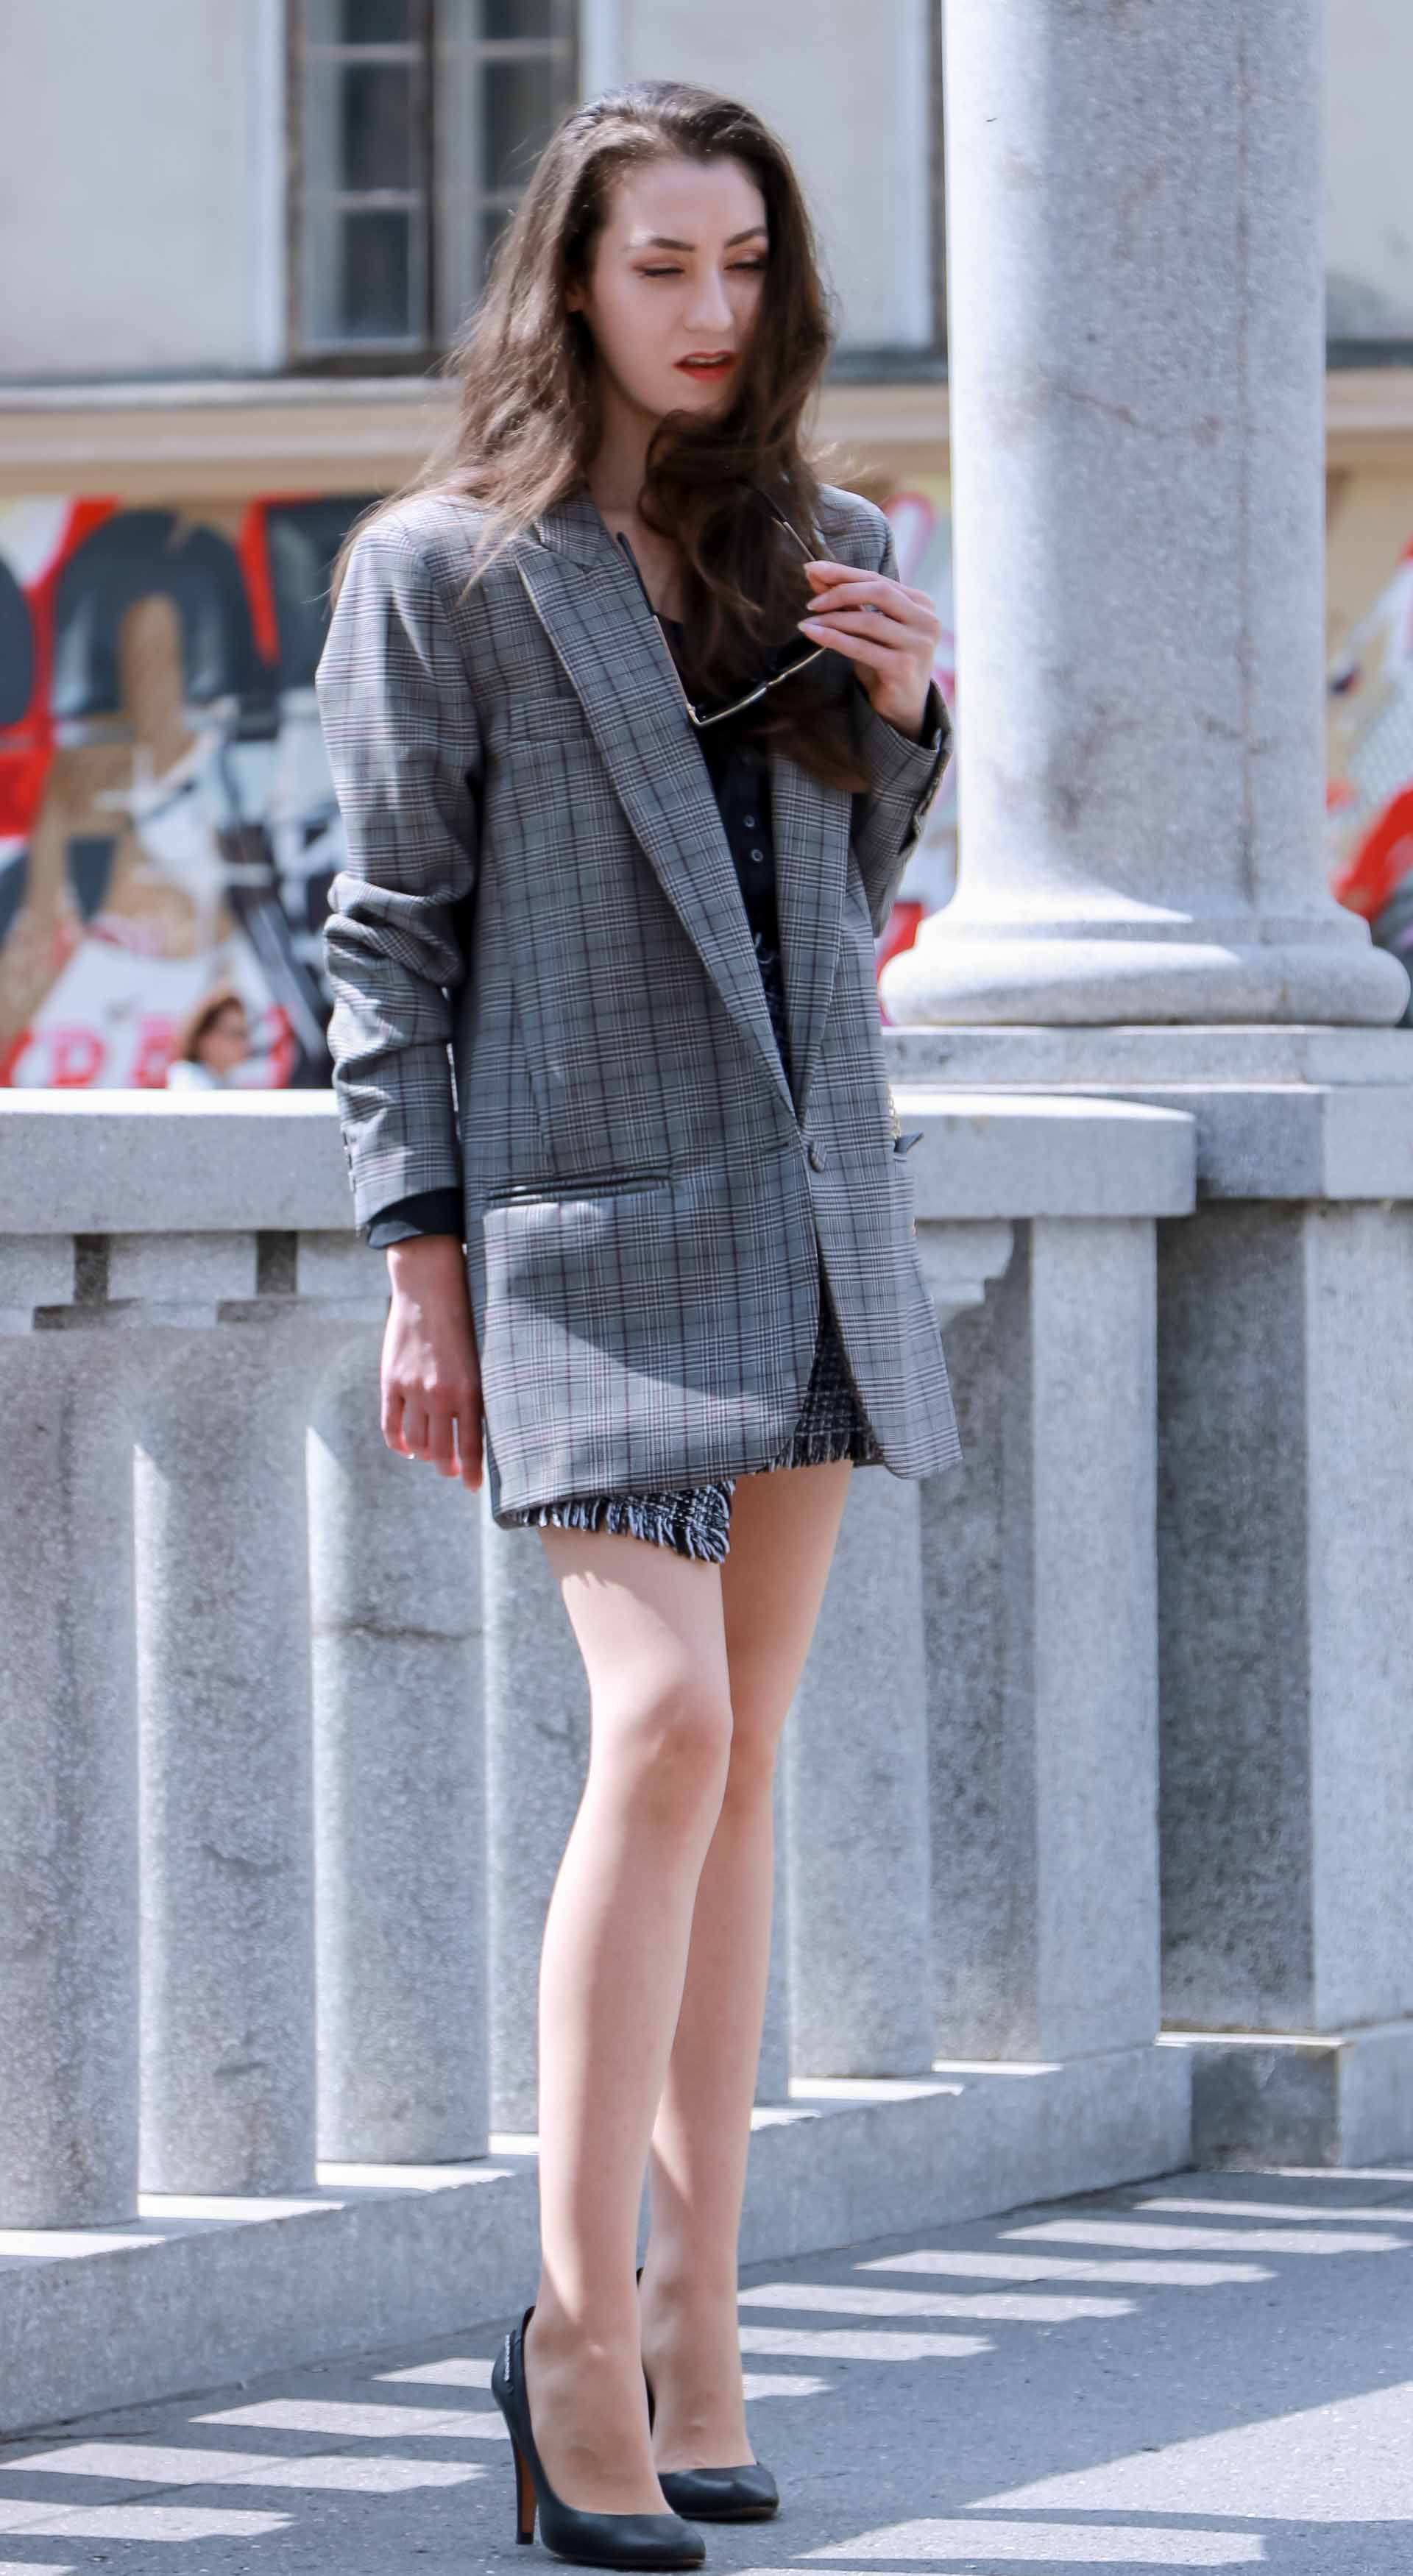 Fashion Blogger Veronika Lipar of Brunette from Wall Street wearing Erika Cavallini oversized boyfriend plaid blazer with short tweed black and white mini skirt from streets, black pumps and white chain strap shoulder bag while standing down the street in Ljubljana